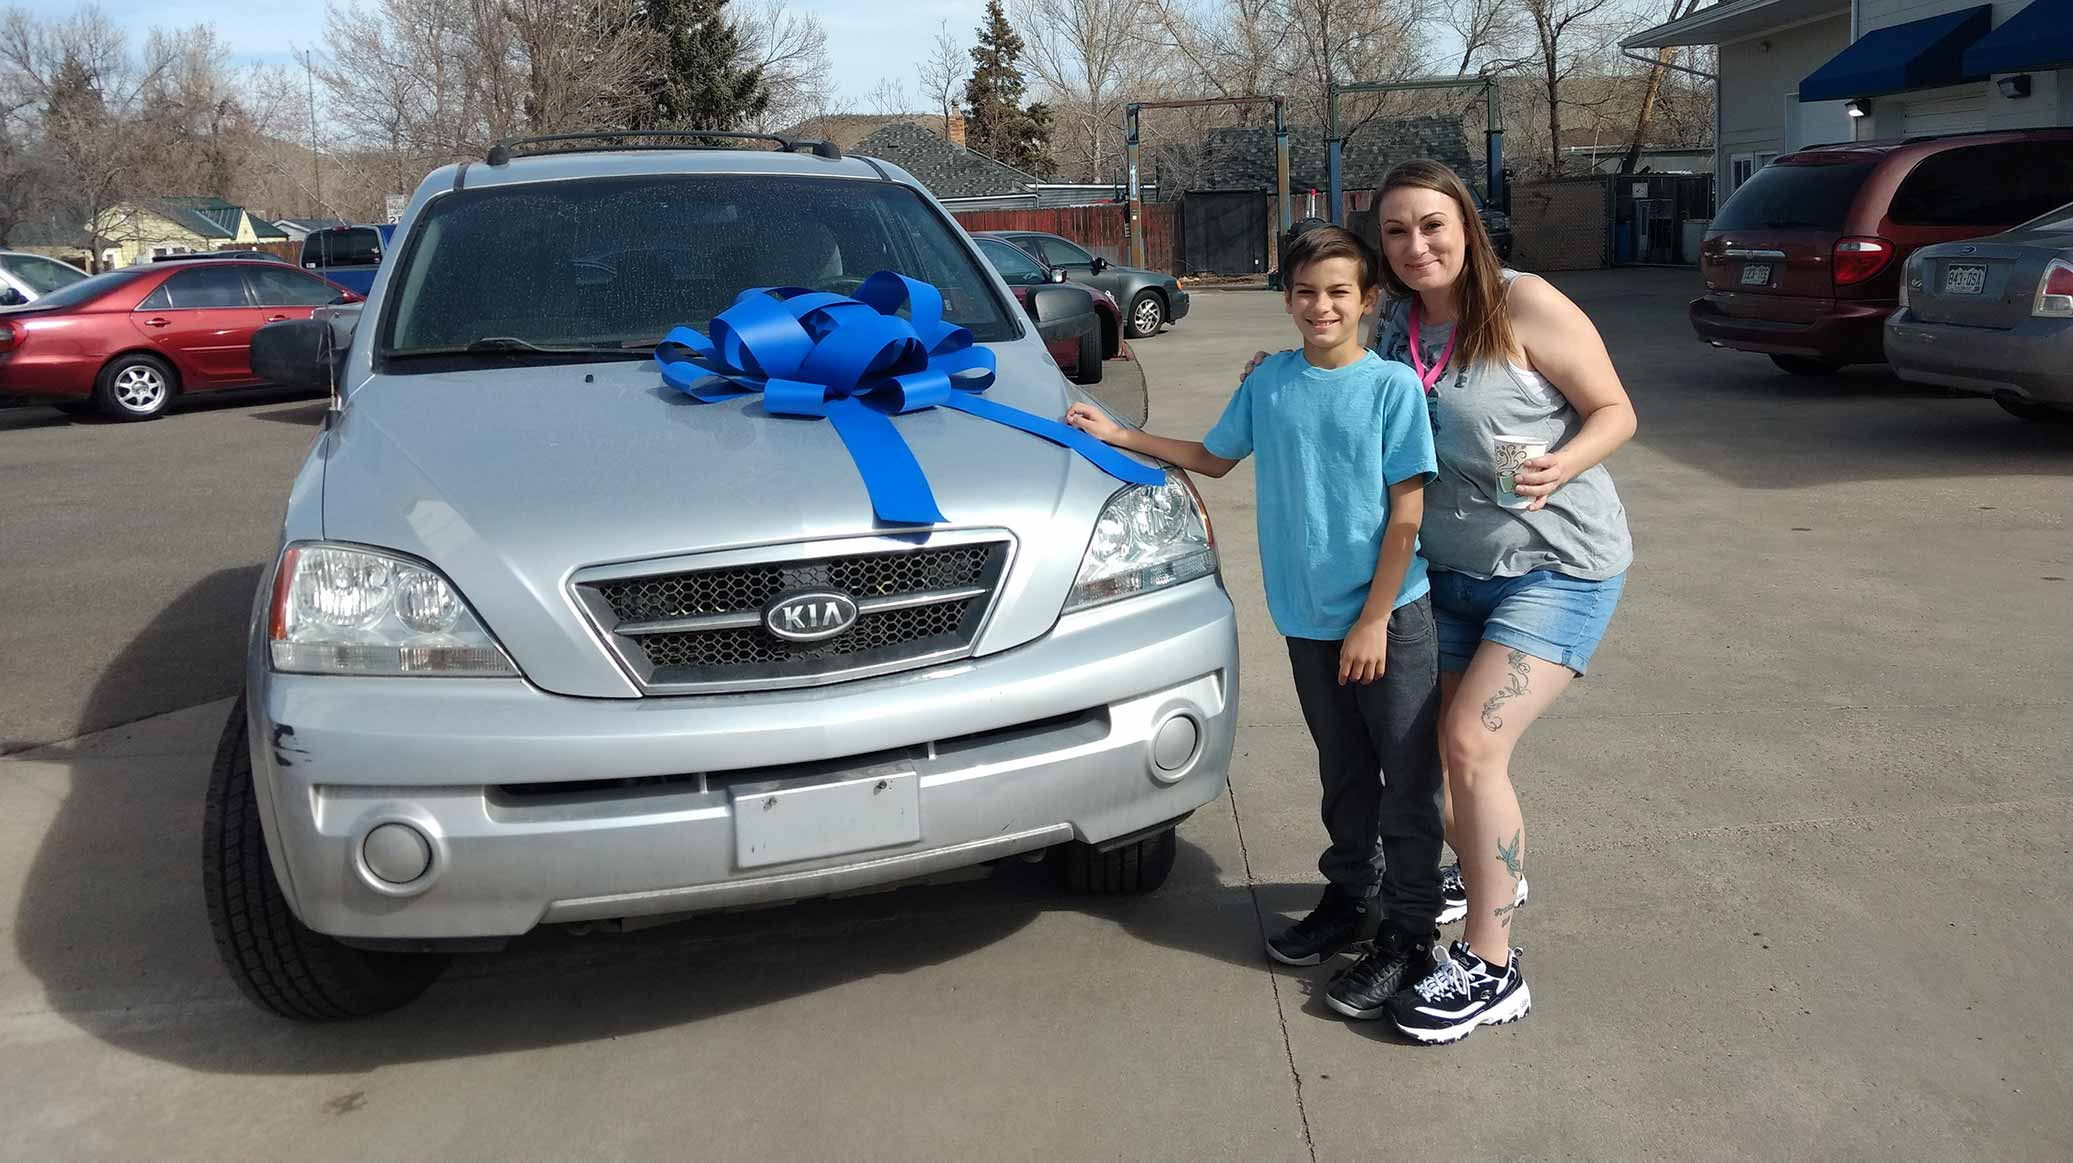 A woman and her son stand in front of a car with a giant bow on the hood, they are smiling